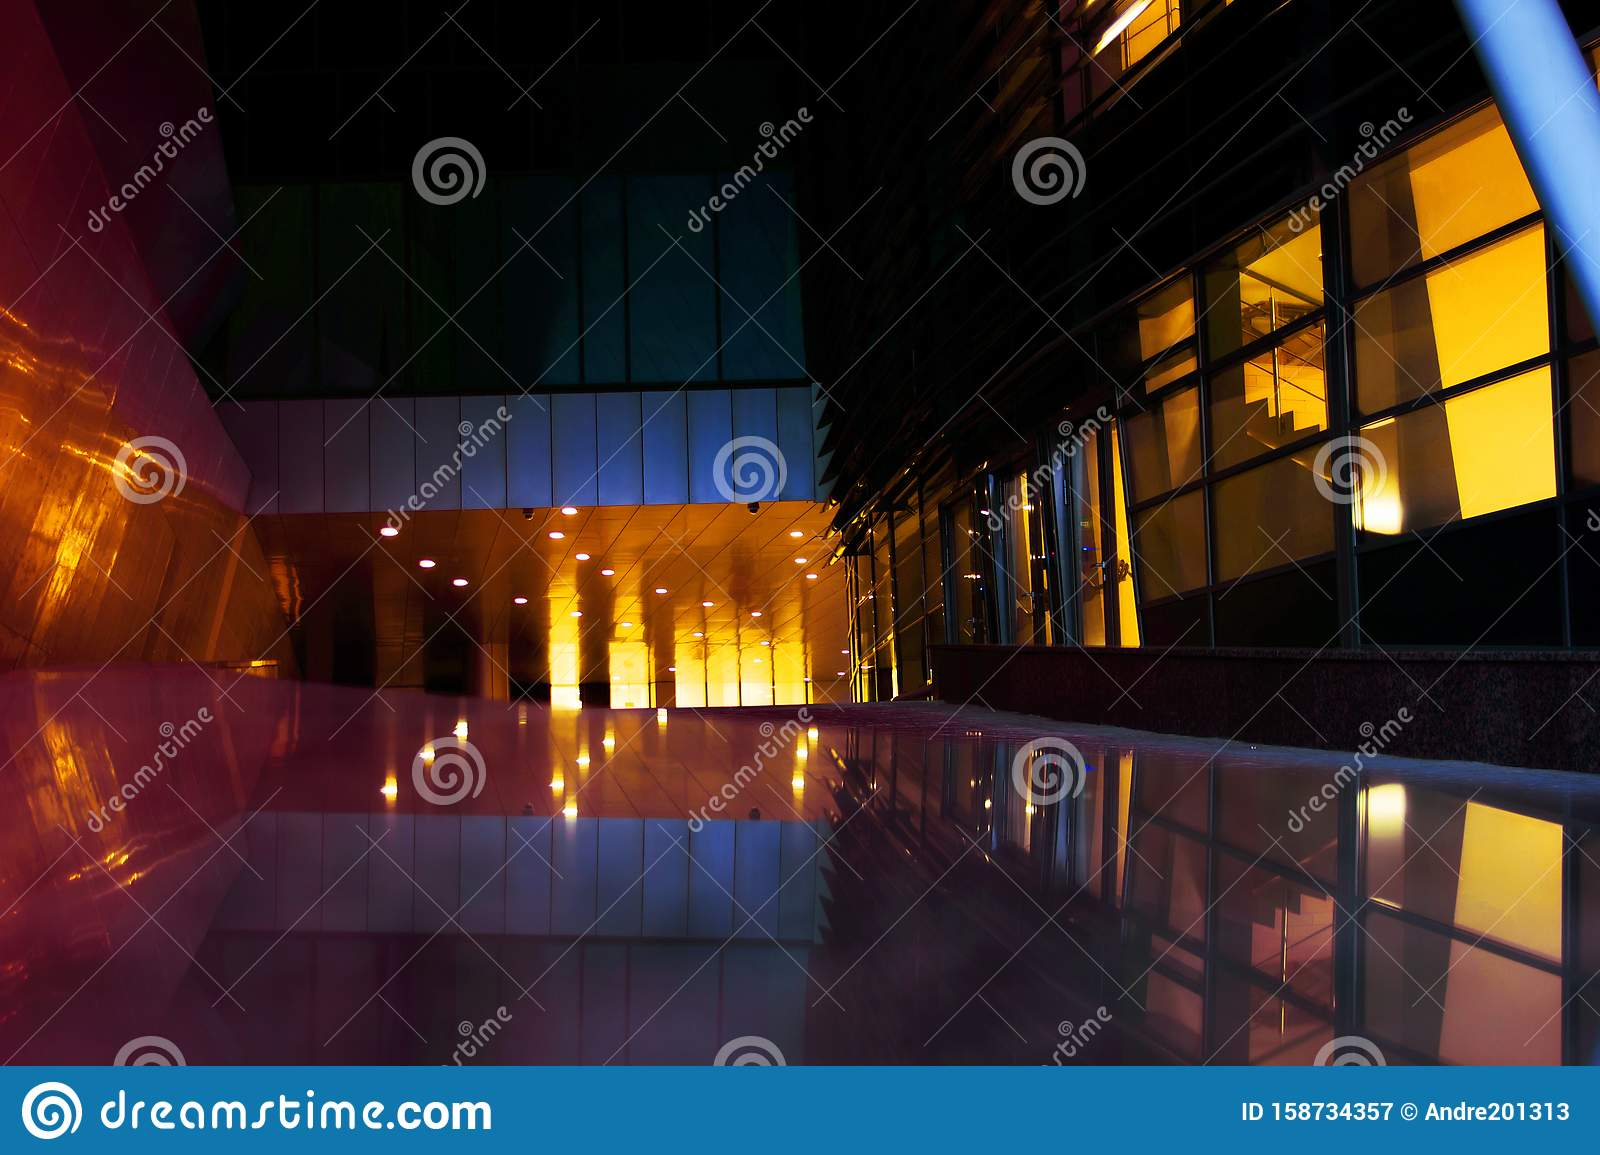 Dark foyer of a modern building illuminated by yellow light